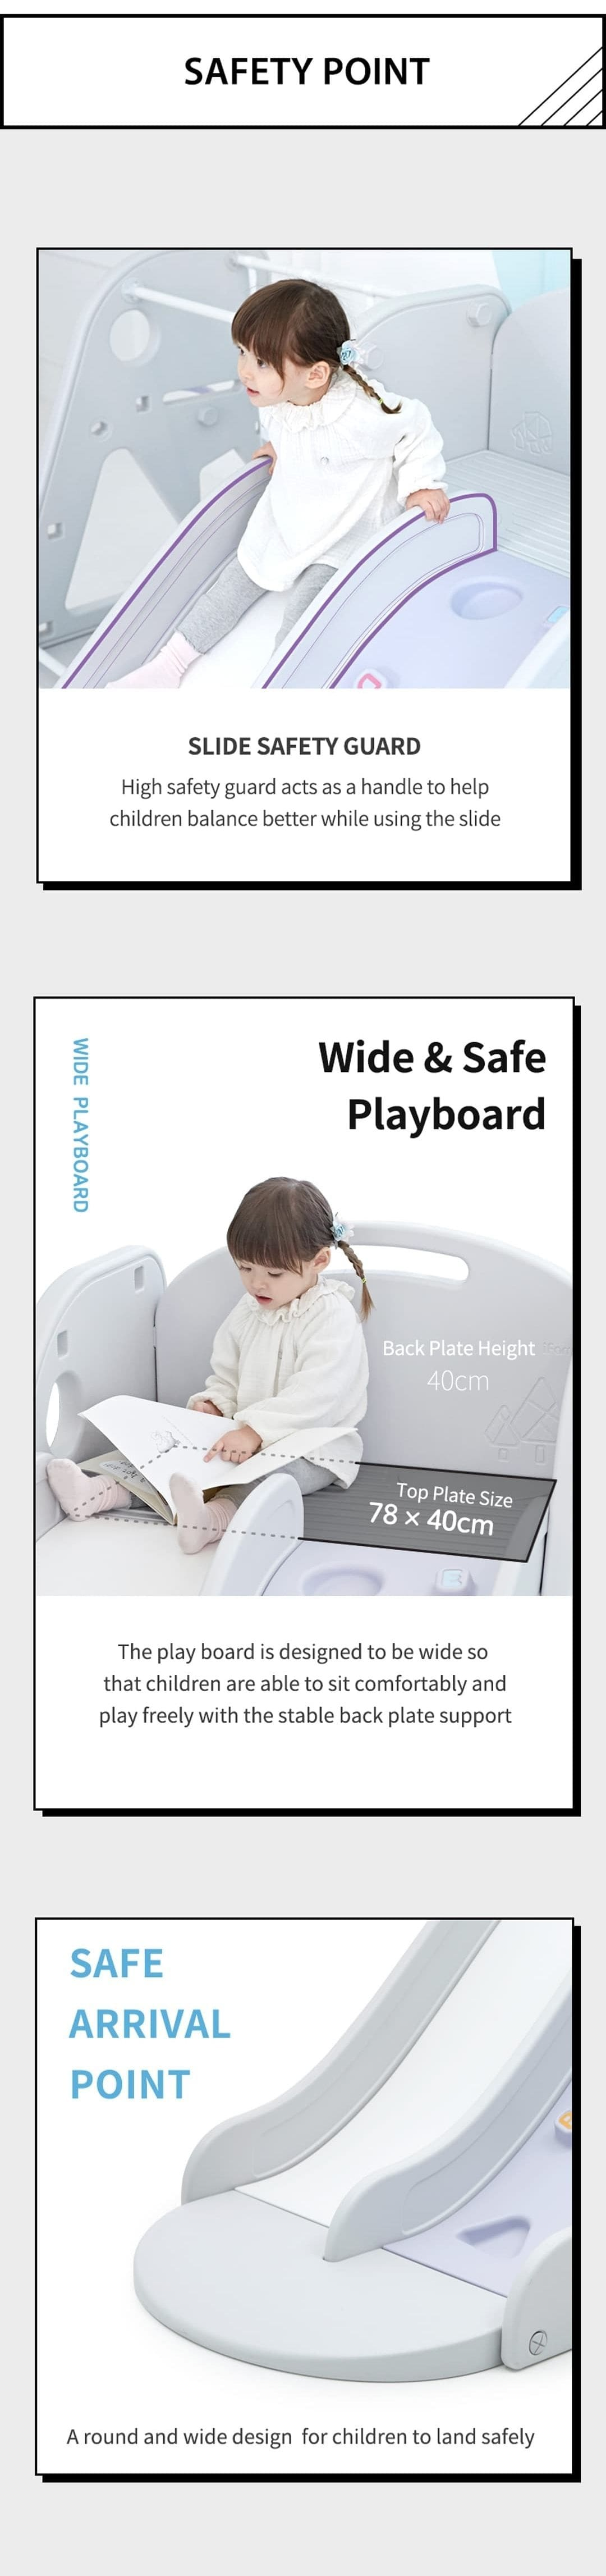 rock climbing slide safety features